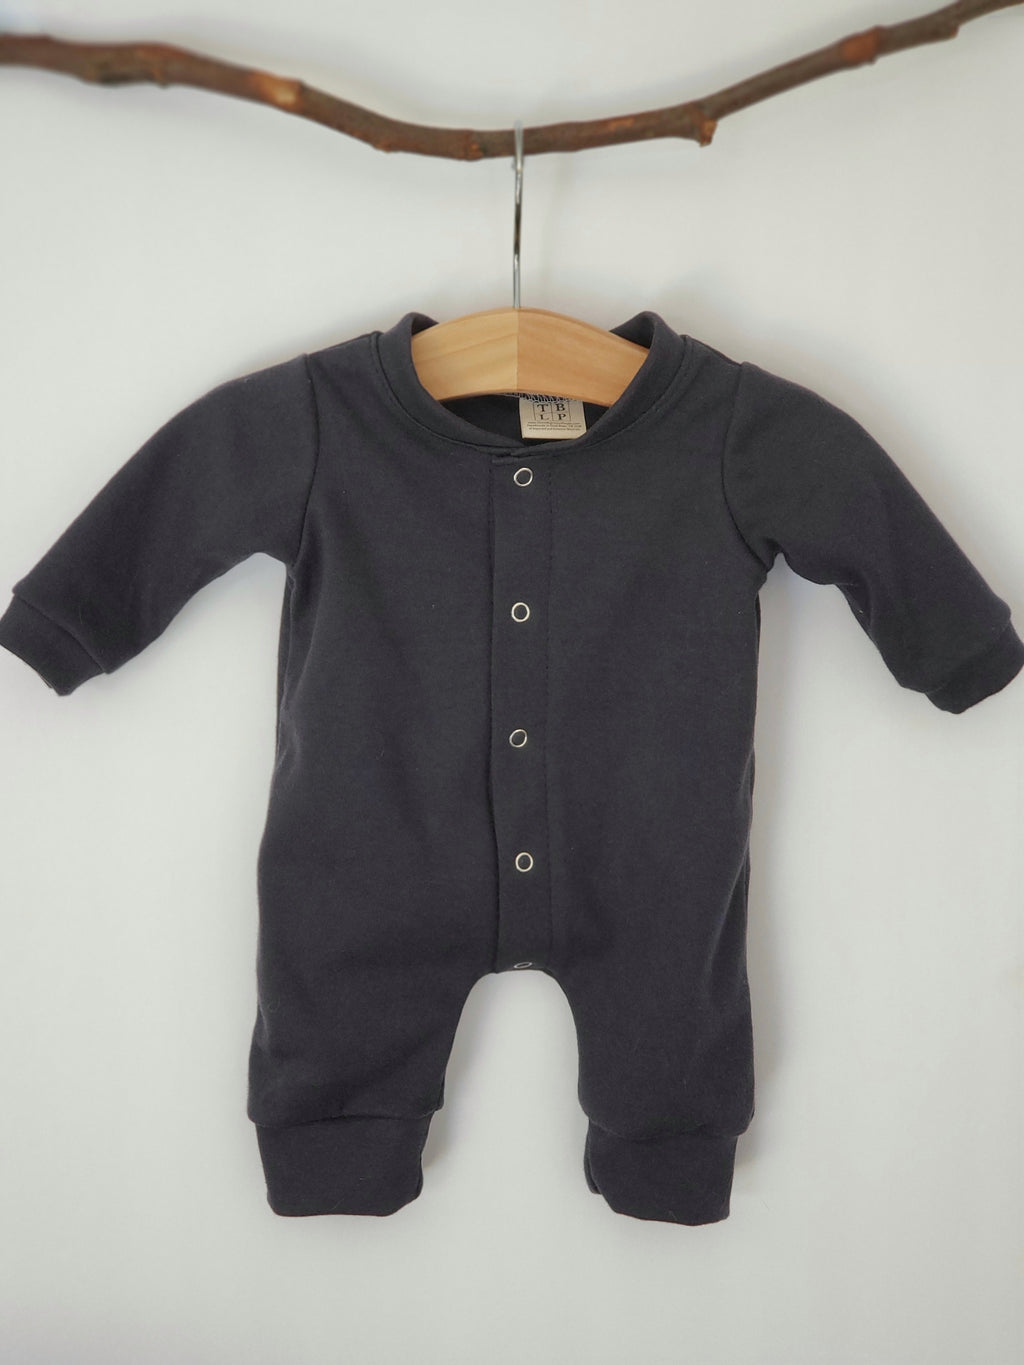 Snap-up Romper - Size Preemie